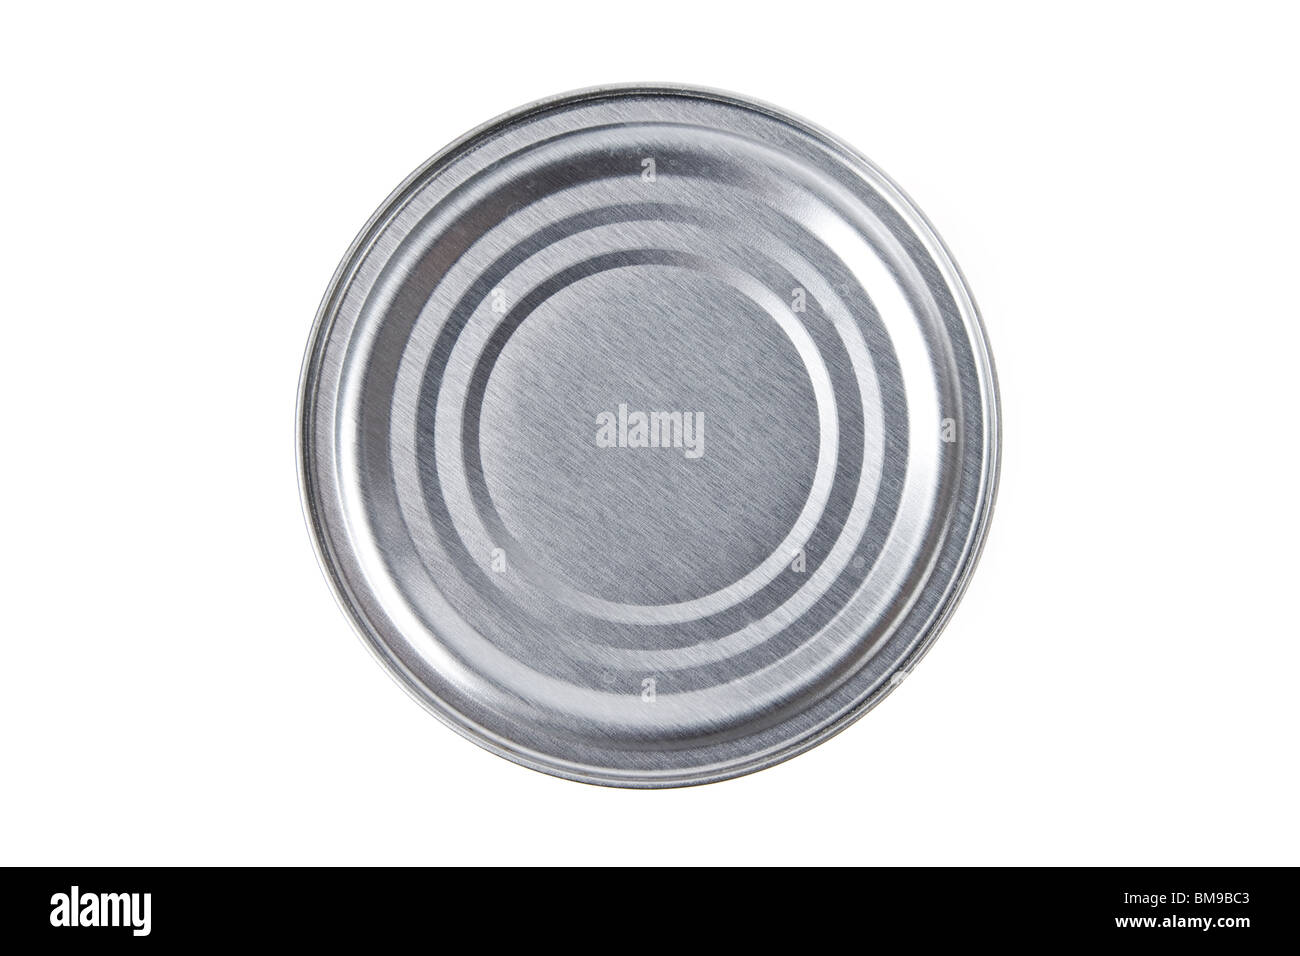 Metal Can top with white background - Stock Image